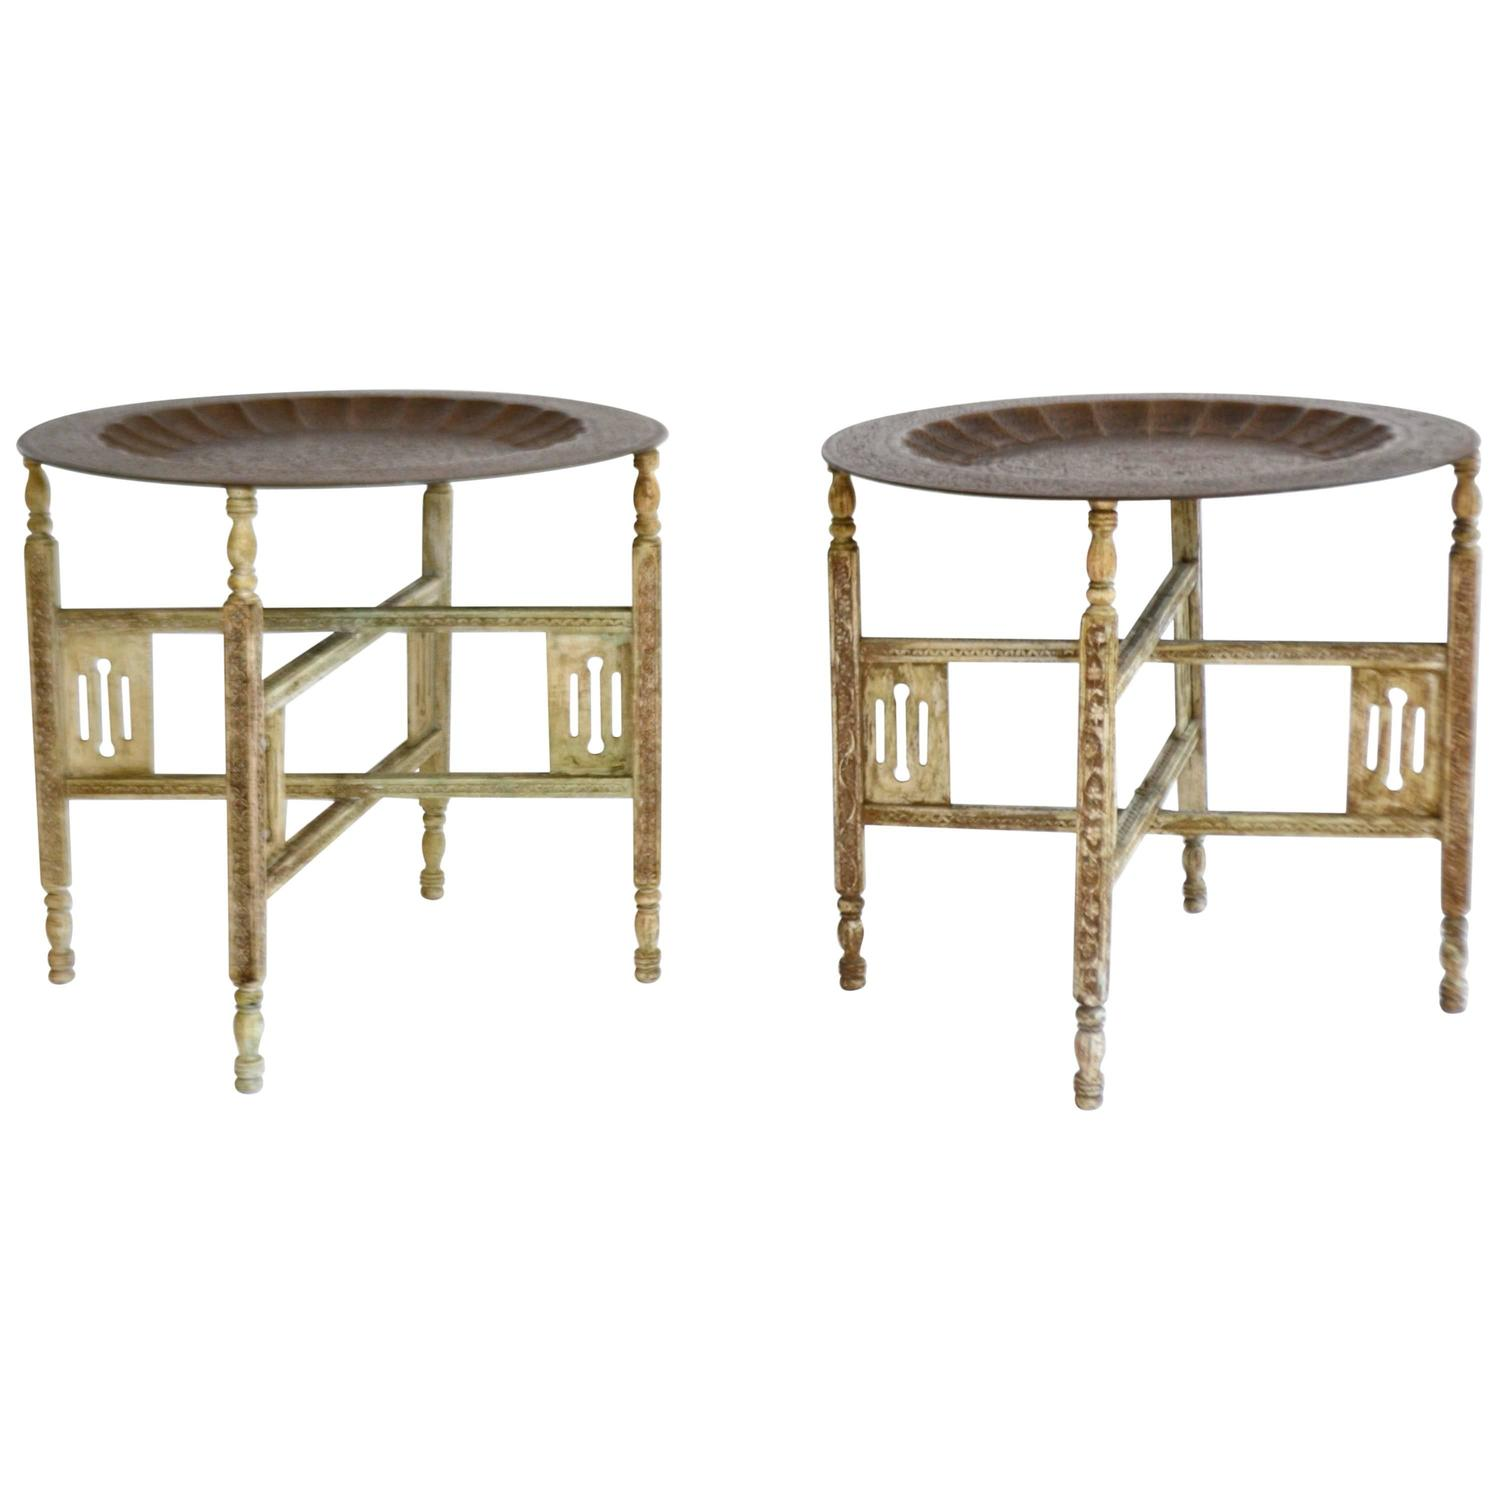 Pair Of Anglo-Indian Brass Tray Tables For Sale At 1stdibs